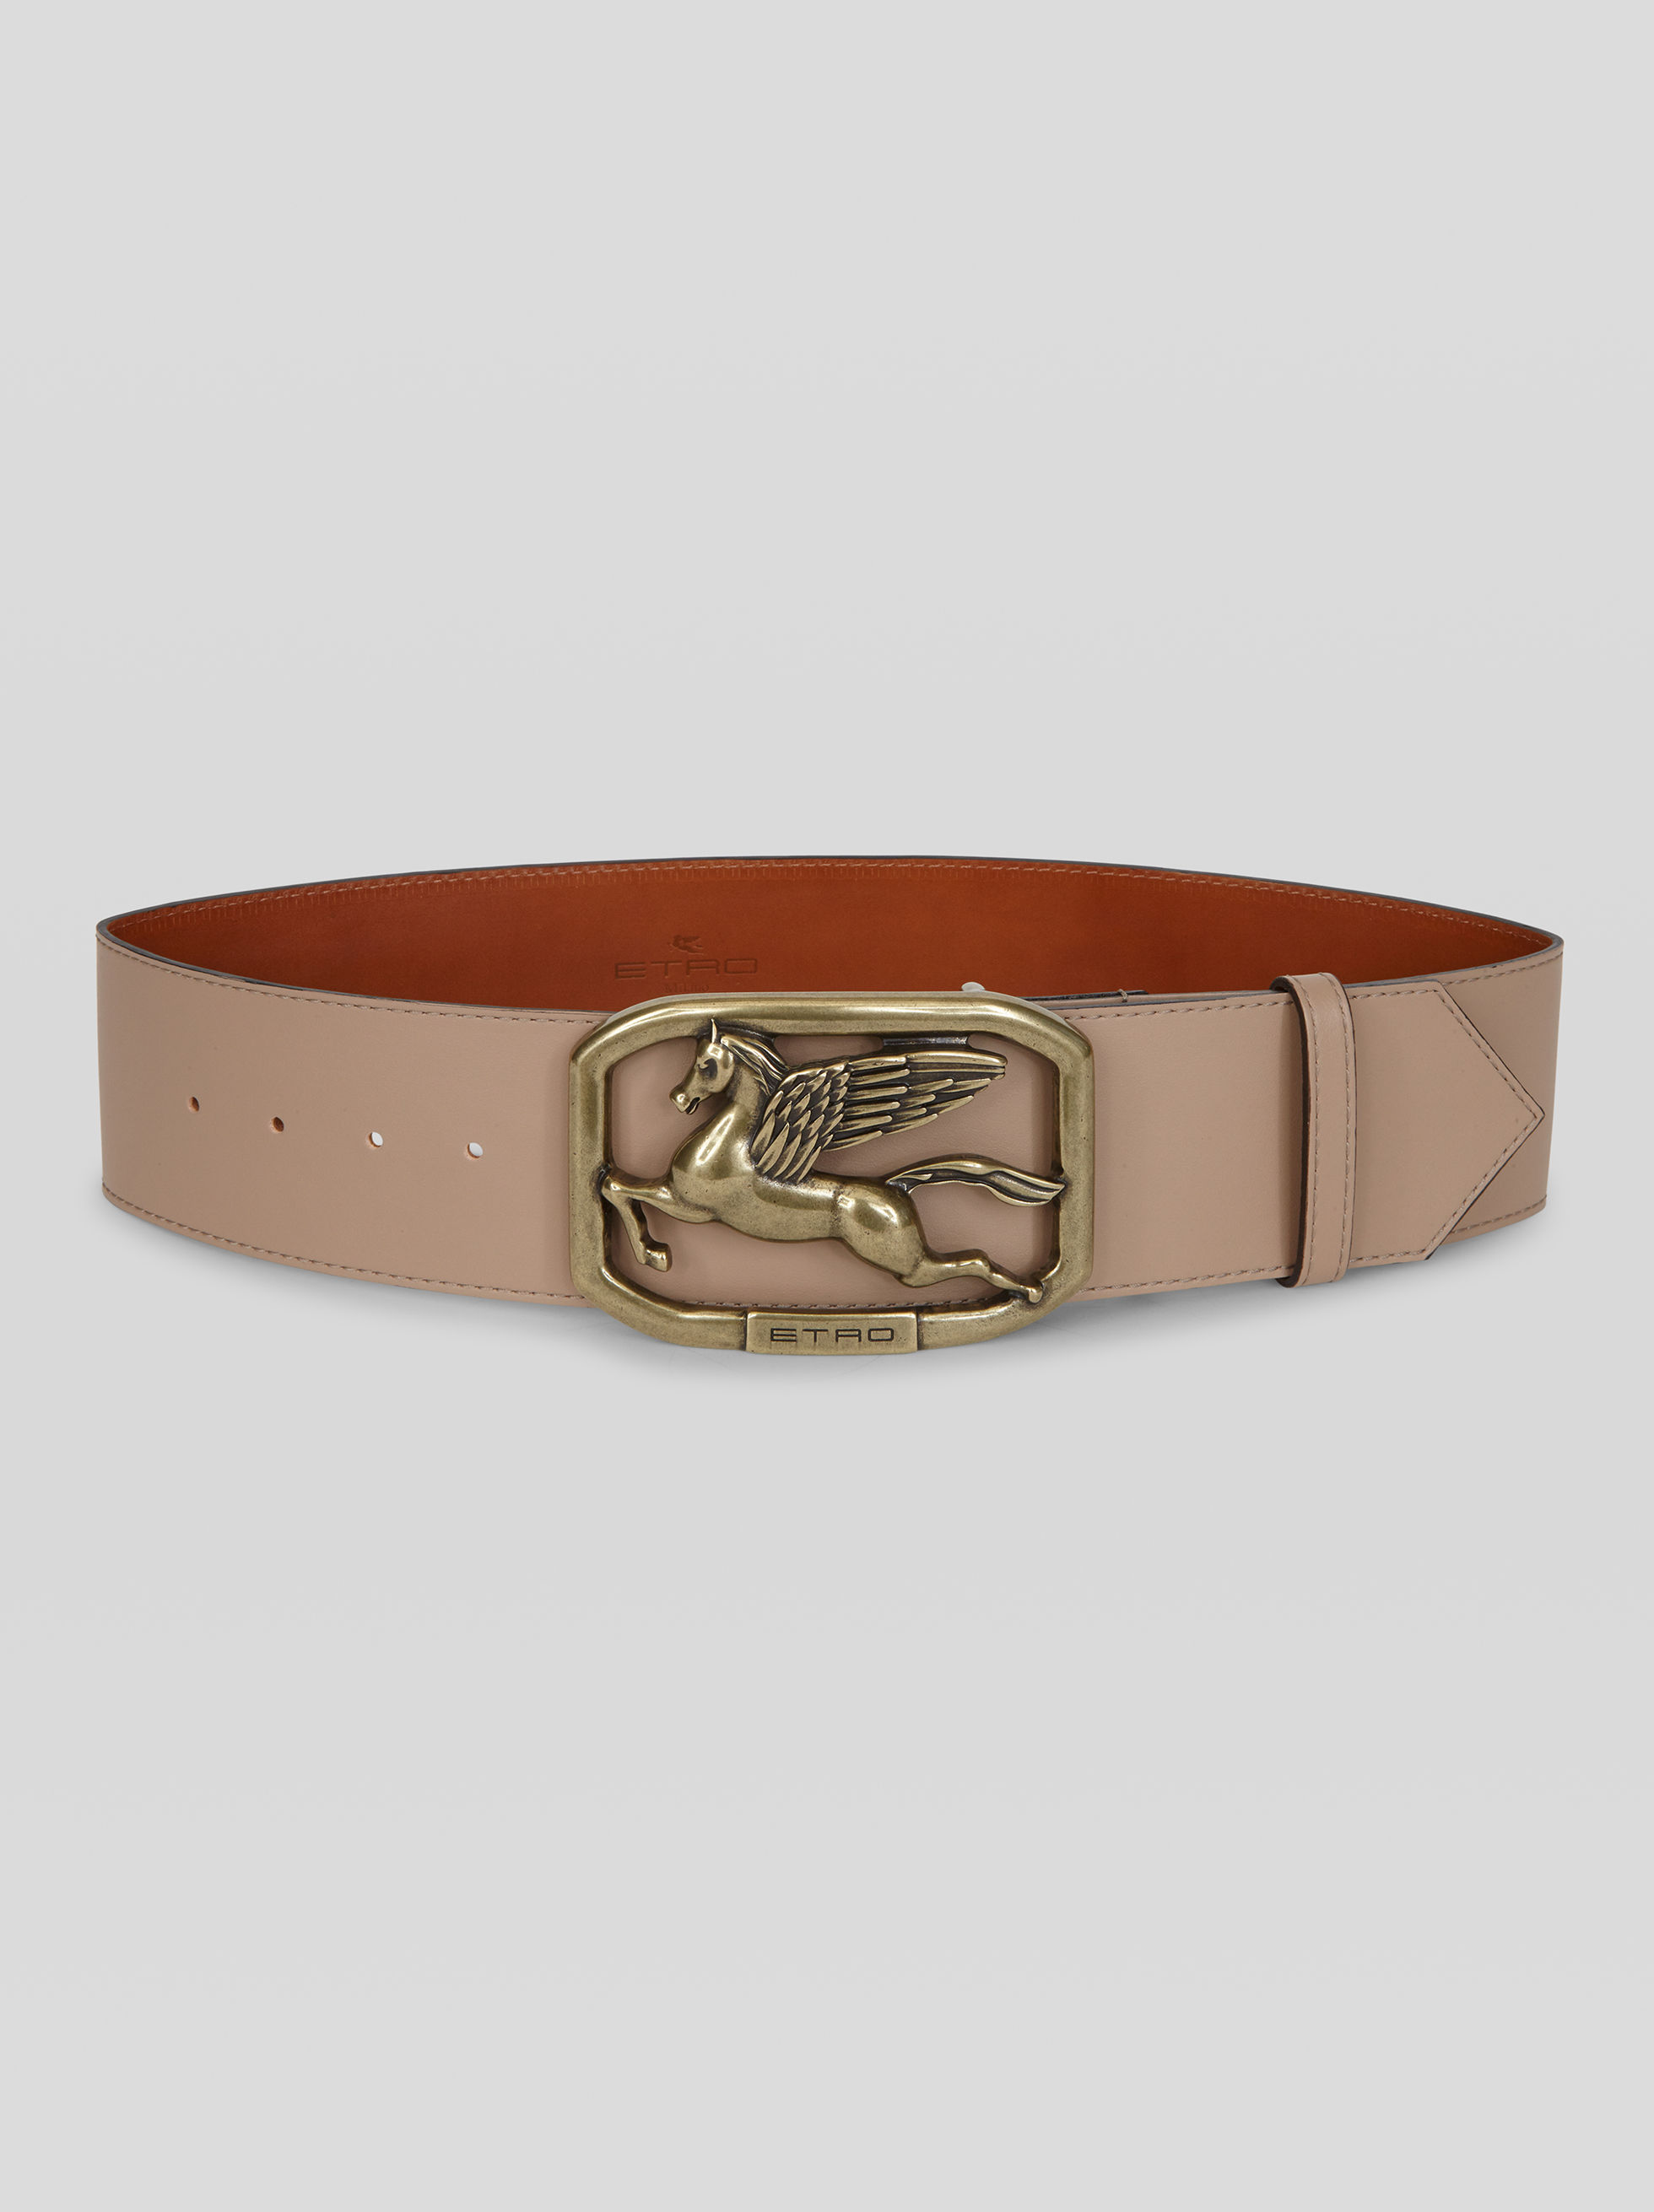 LEATHER BELT WITH PEGASO BUCKLE